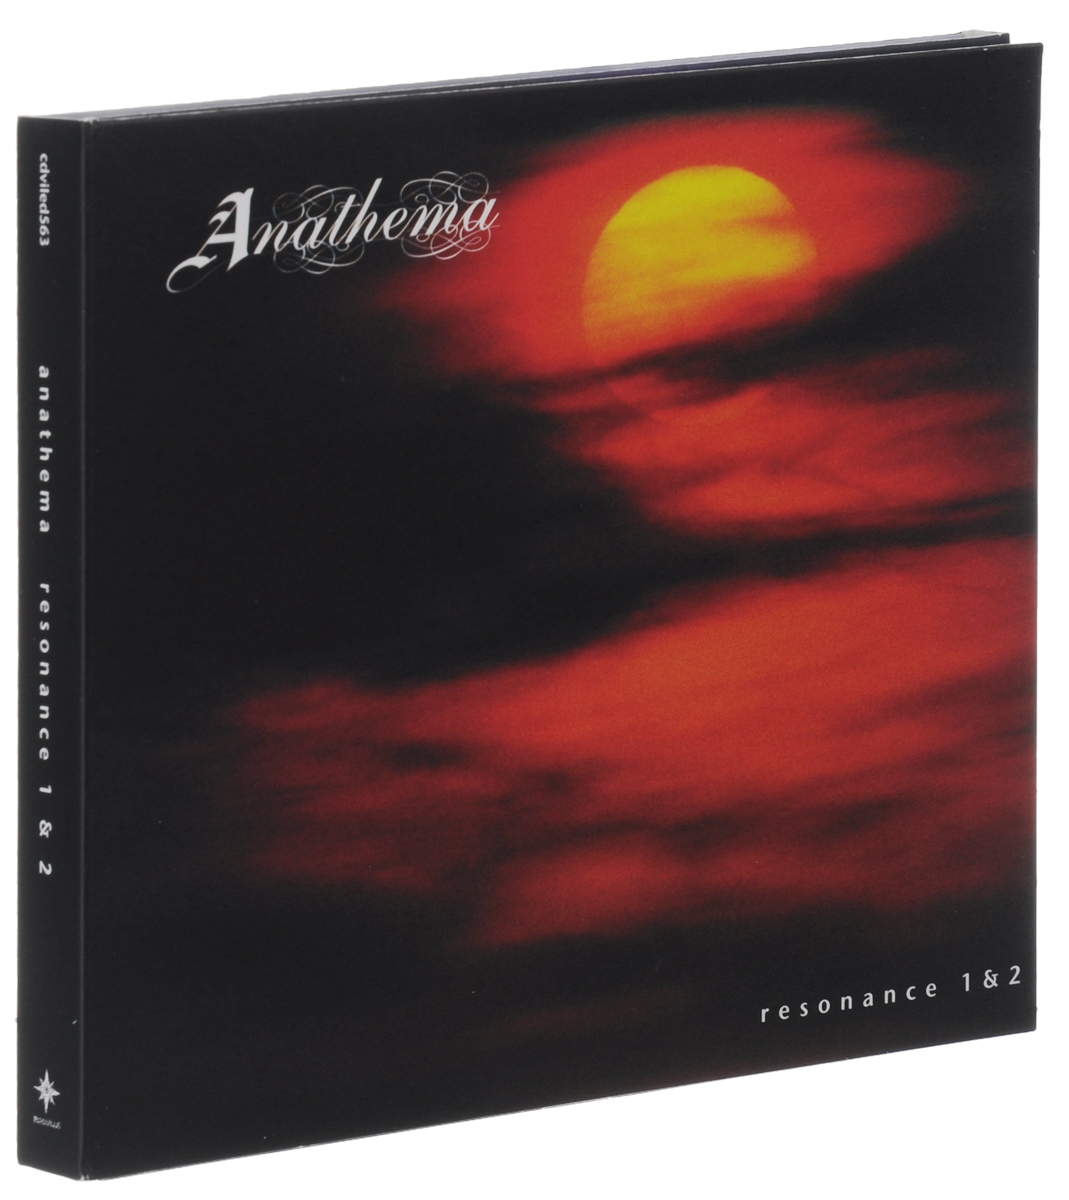 Anathema Anathema. Resonance 1 & 2 (2 CD) тетрадь на пружине printio тетрадь аниме